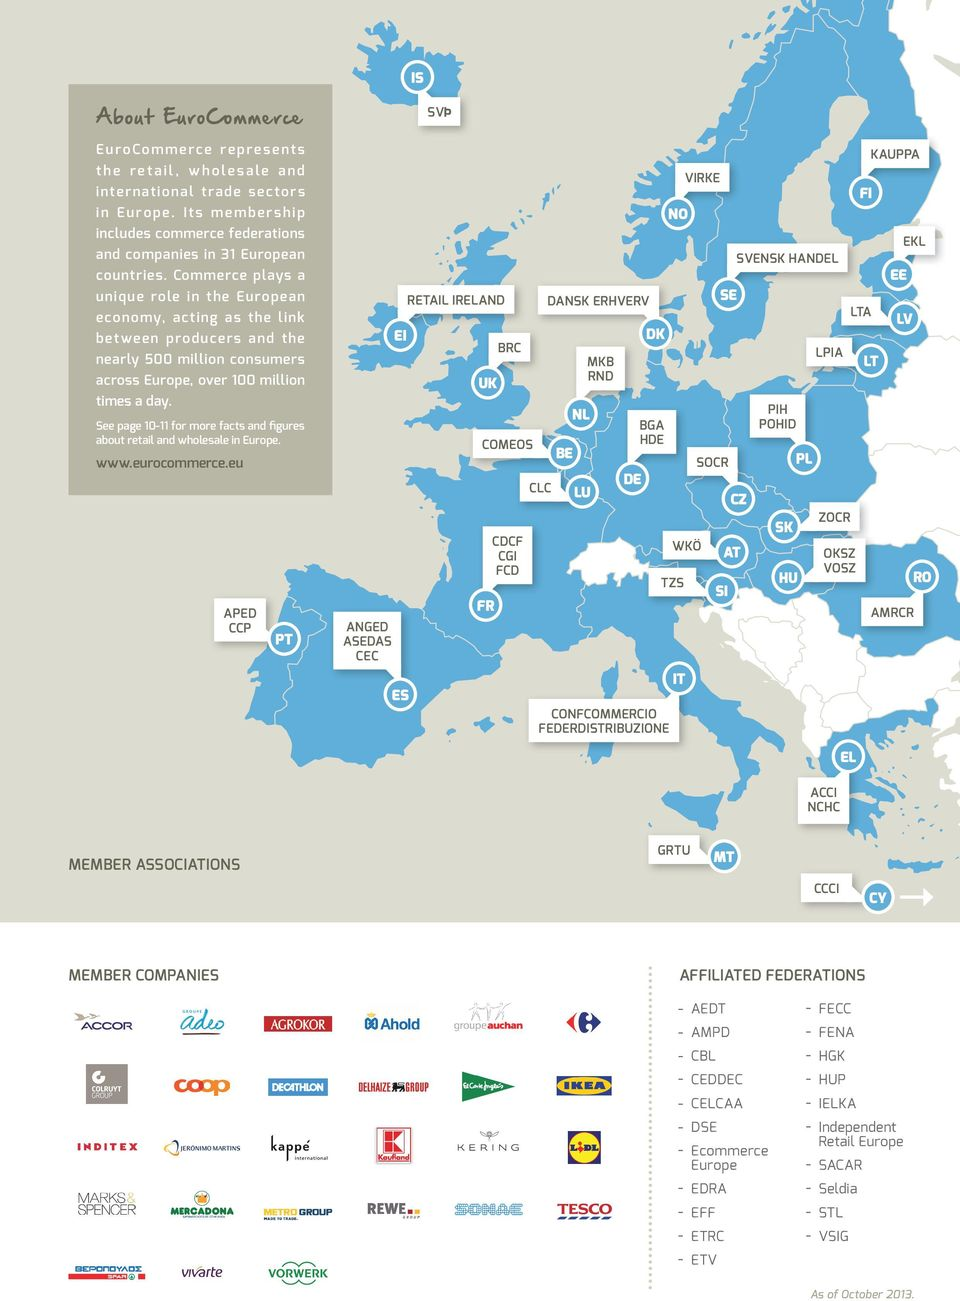 See page 10-11 for more facts and figures about retail and wholesale in Europe. www.eurocommerce.